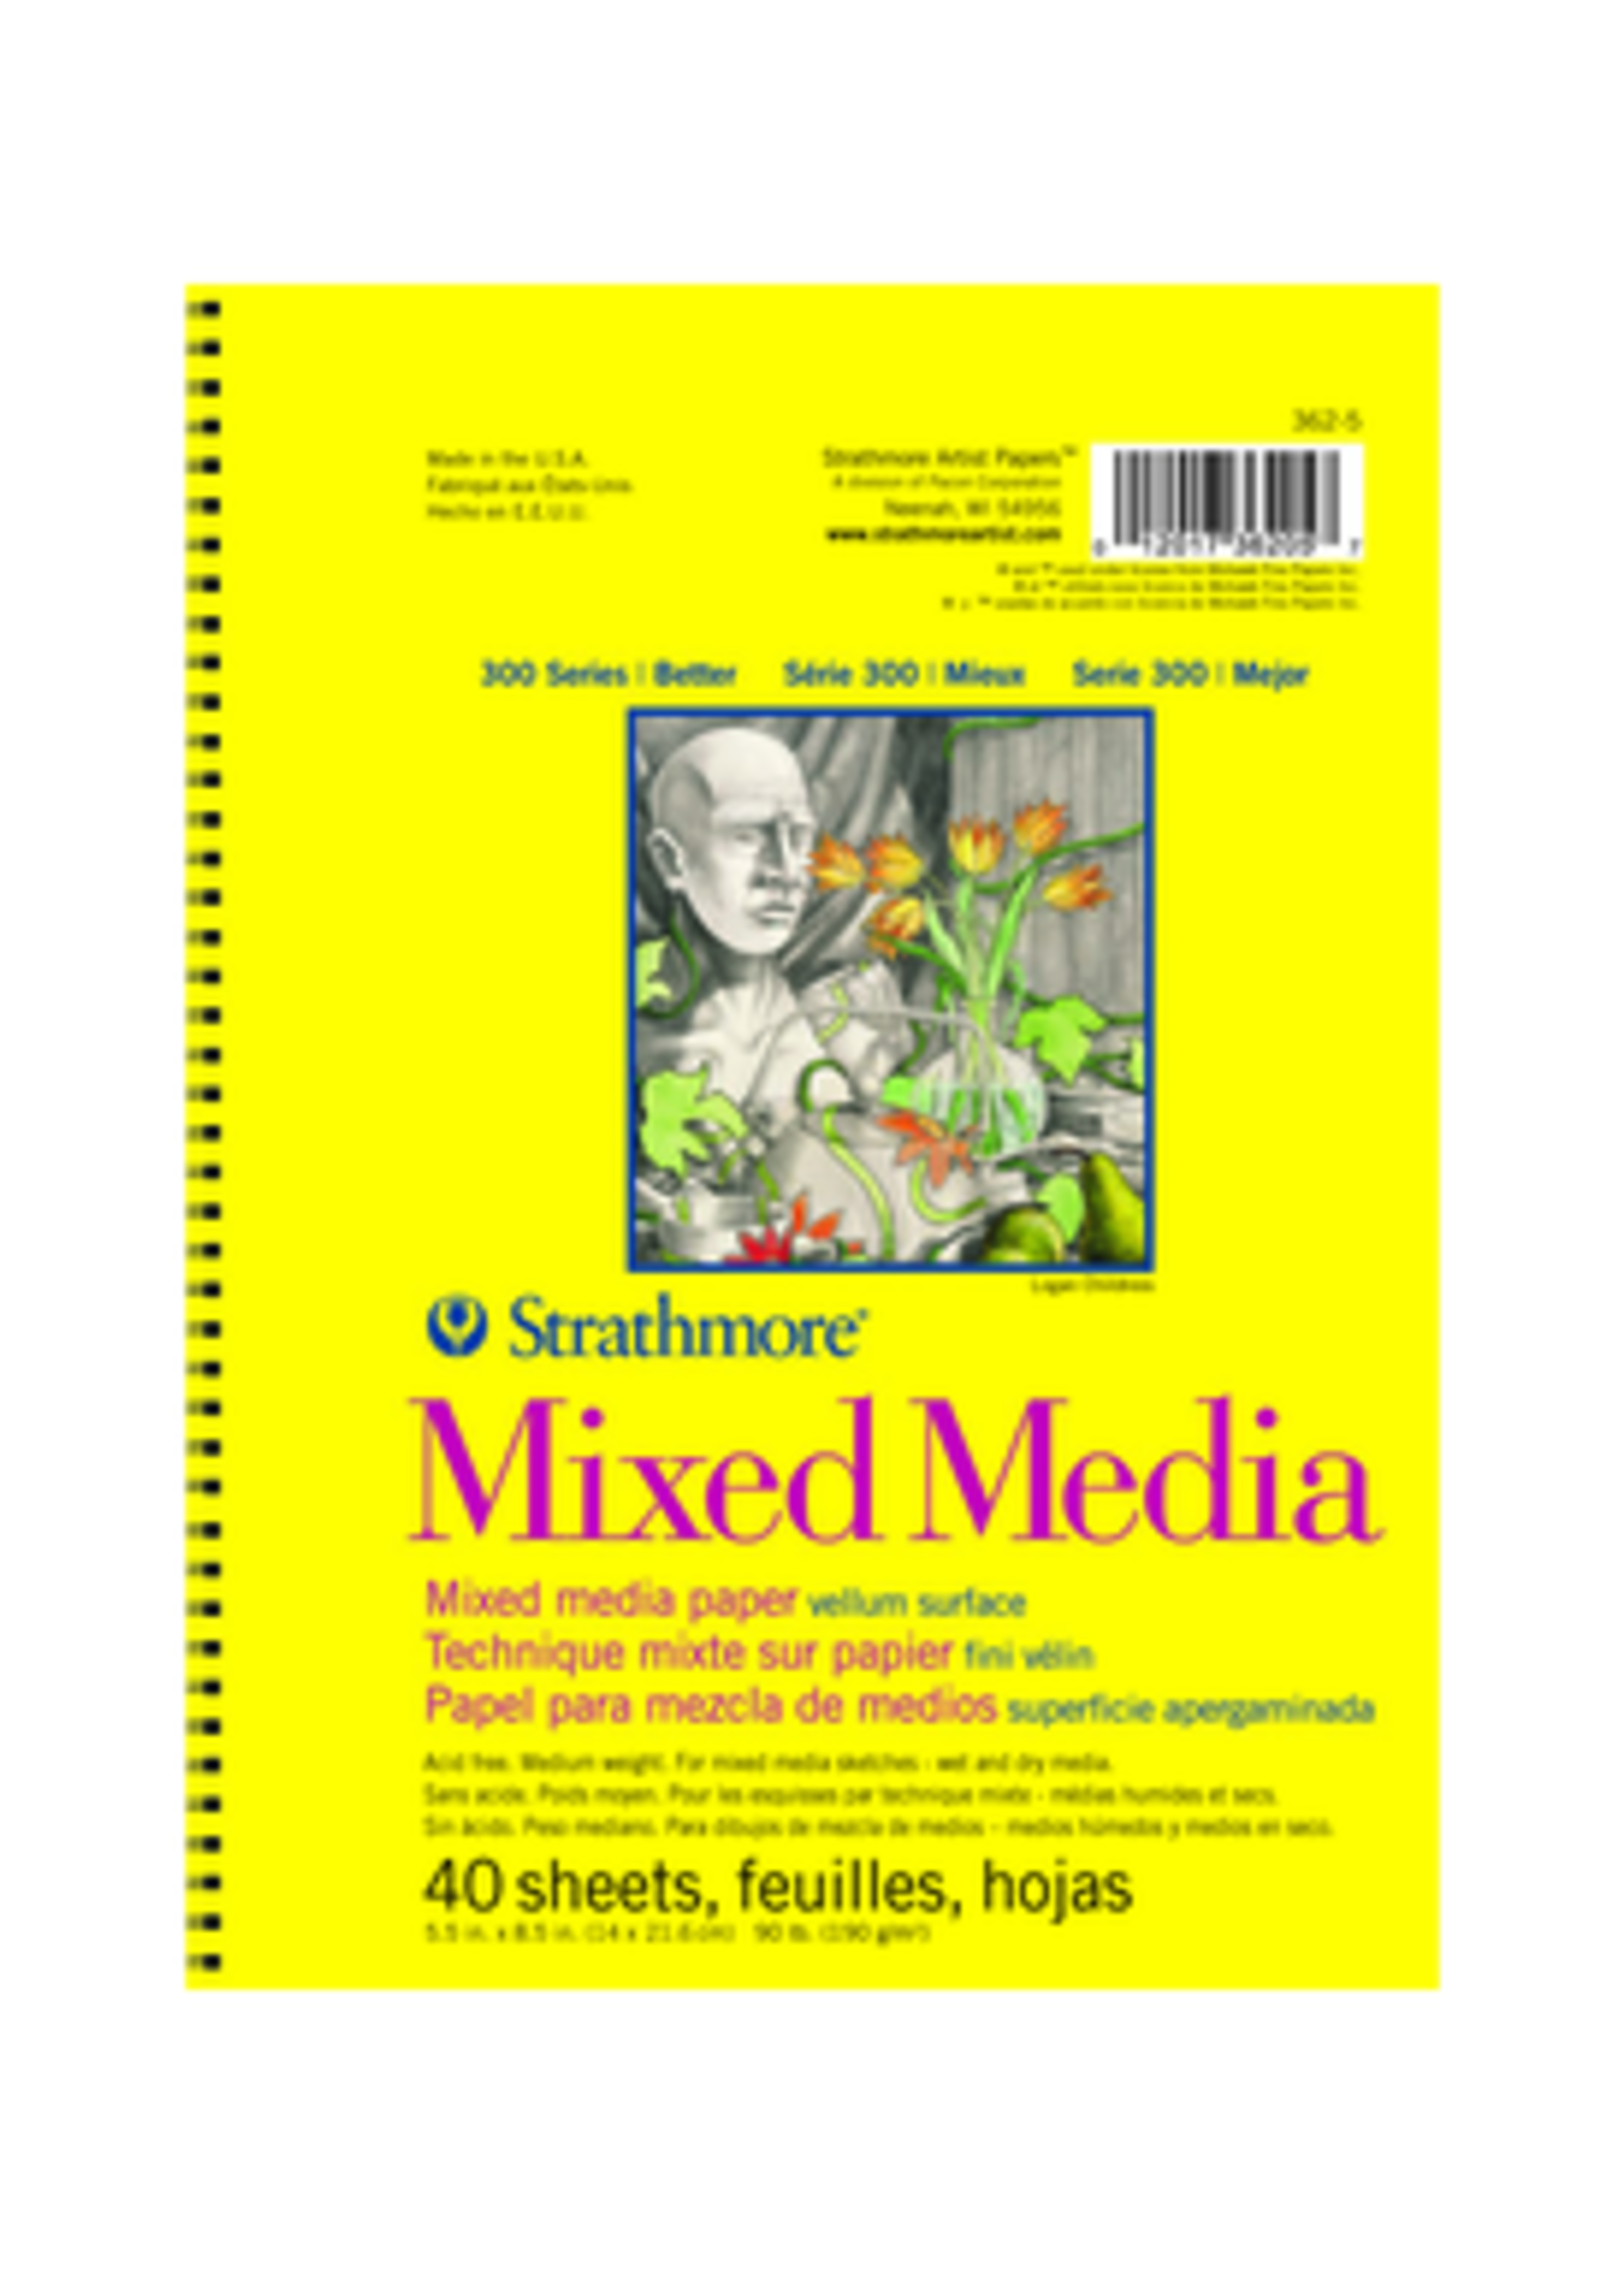 PACON/STRATHMORE MIXED MEDIA MICRO PERFORATED SPIRAL 90LB 40 SHEETS 5.5 X 8.5